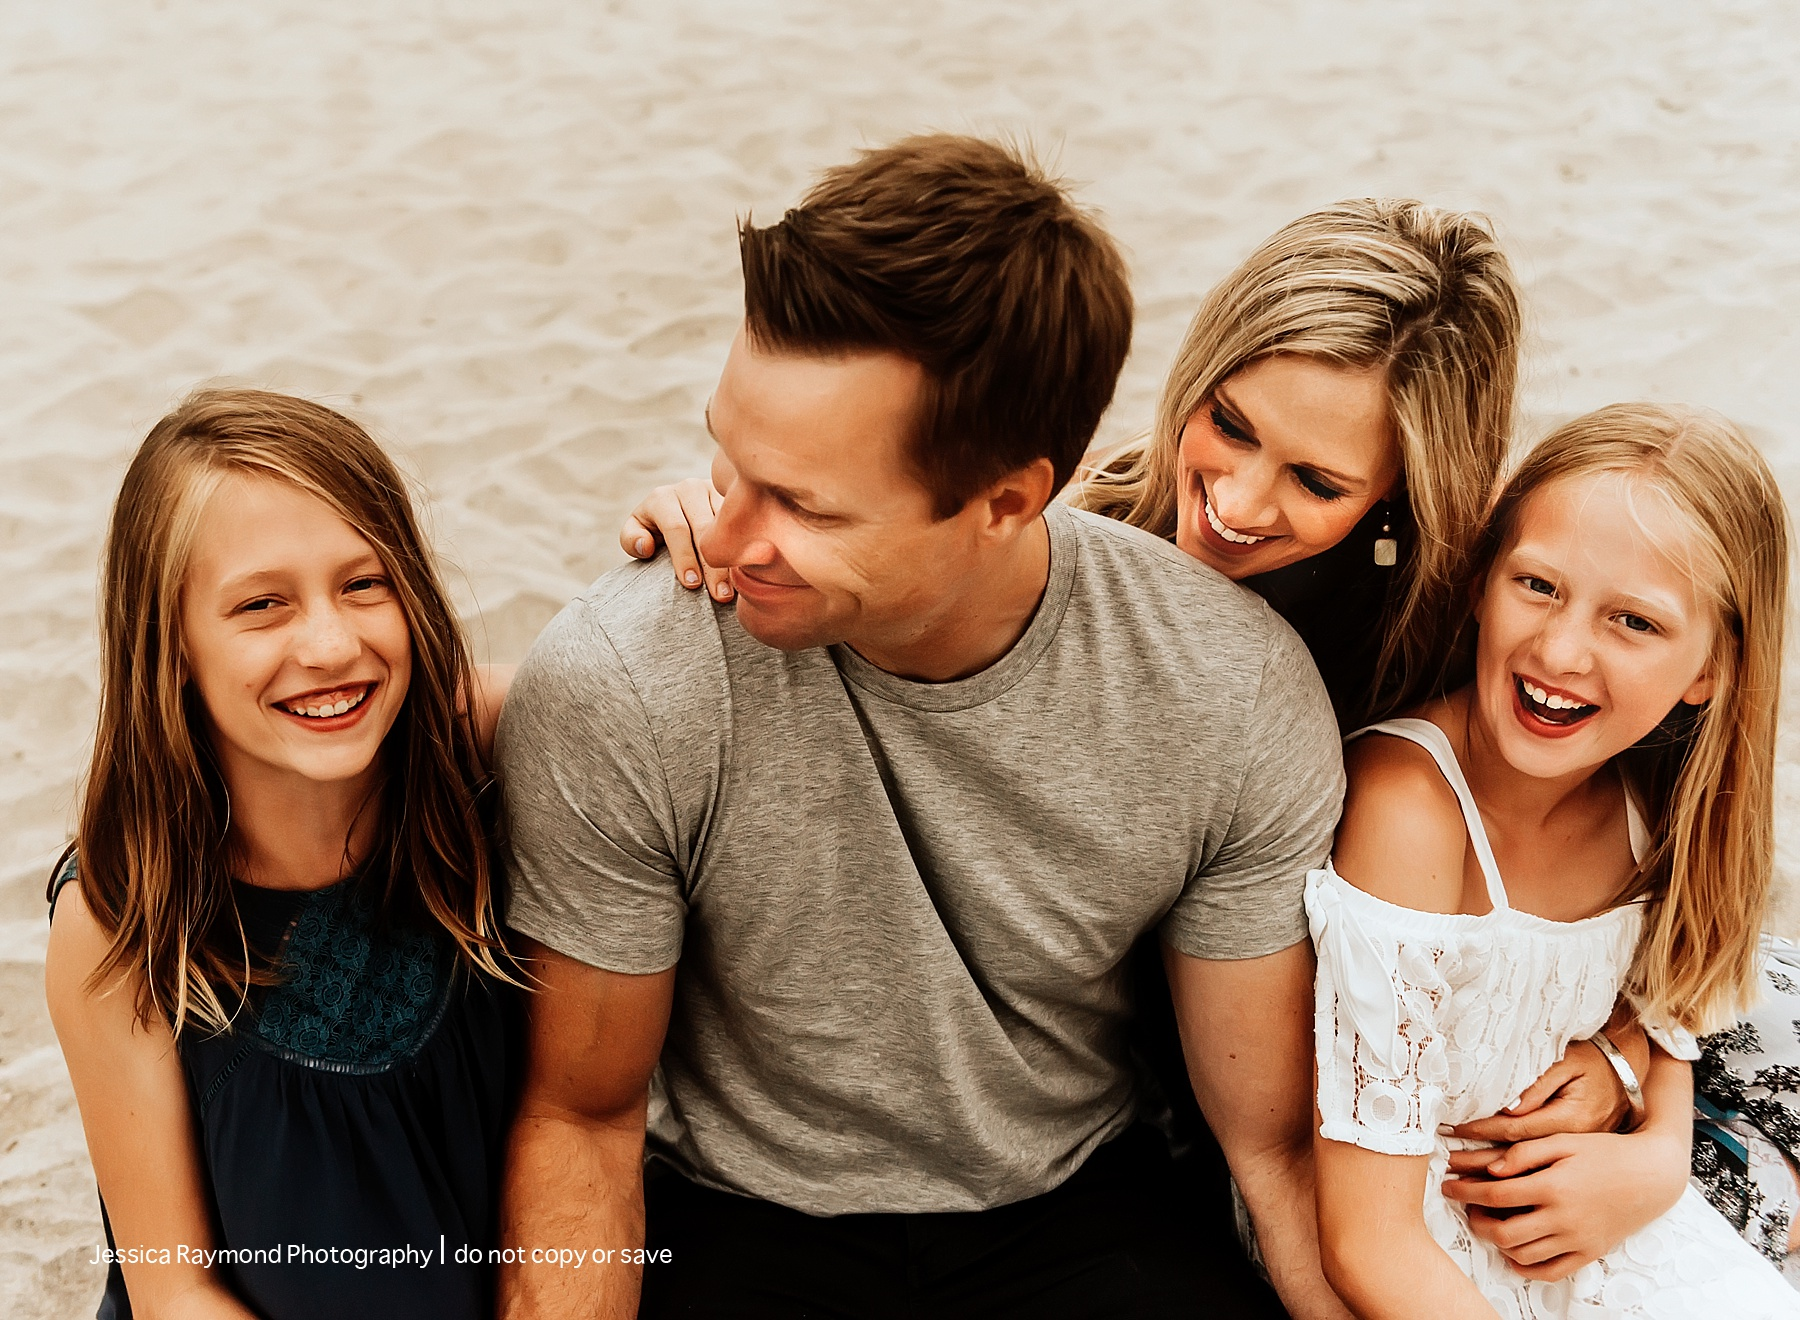 family beach picture ideas family of 4